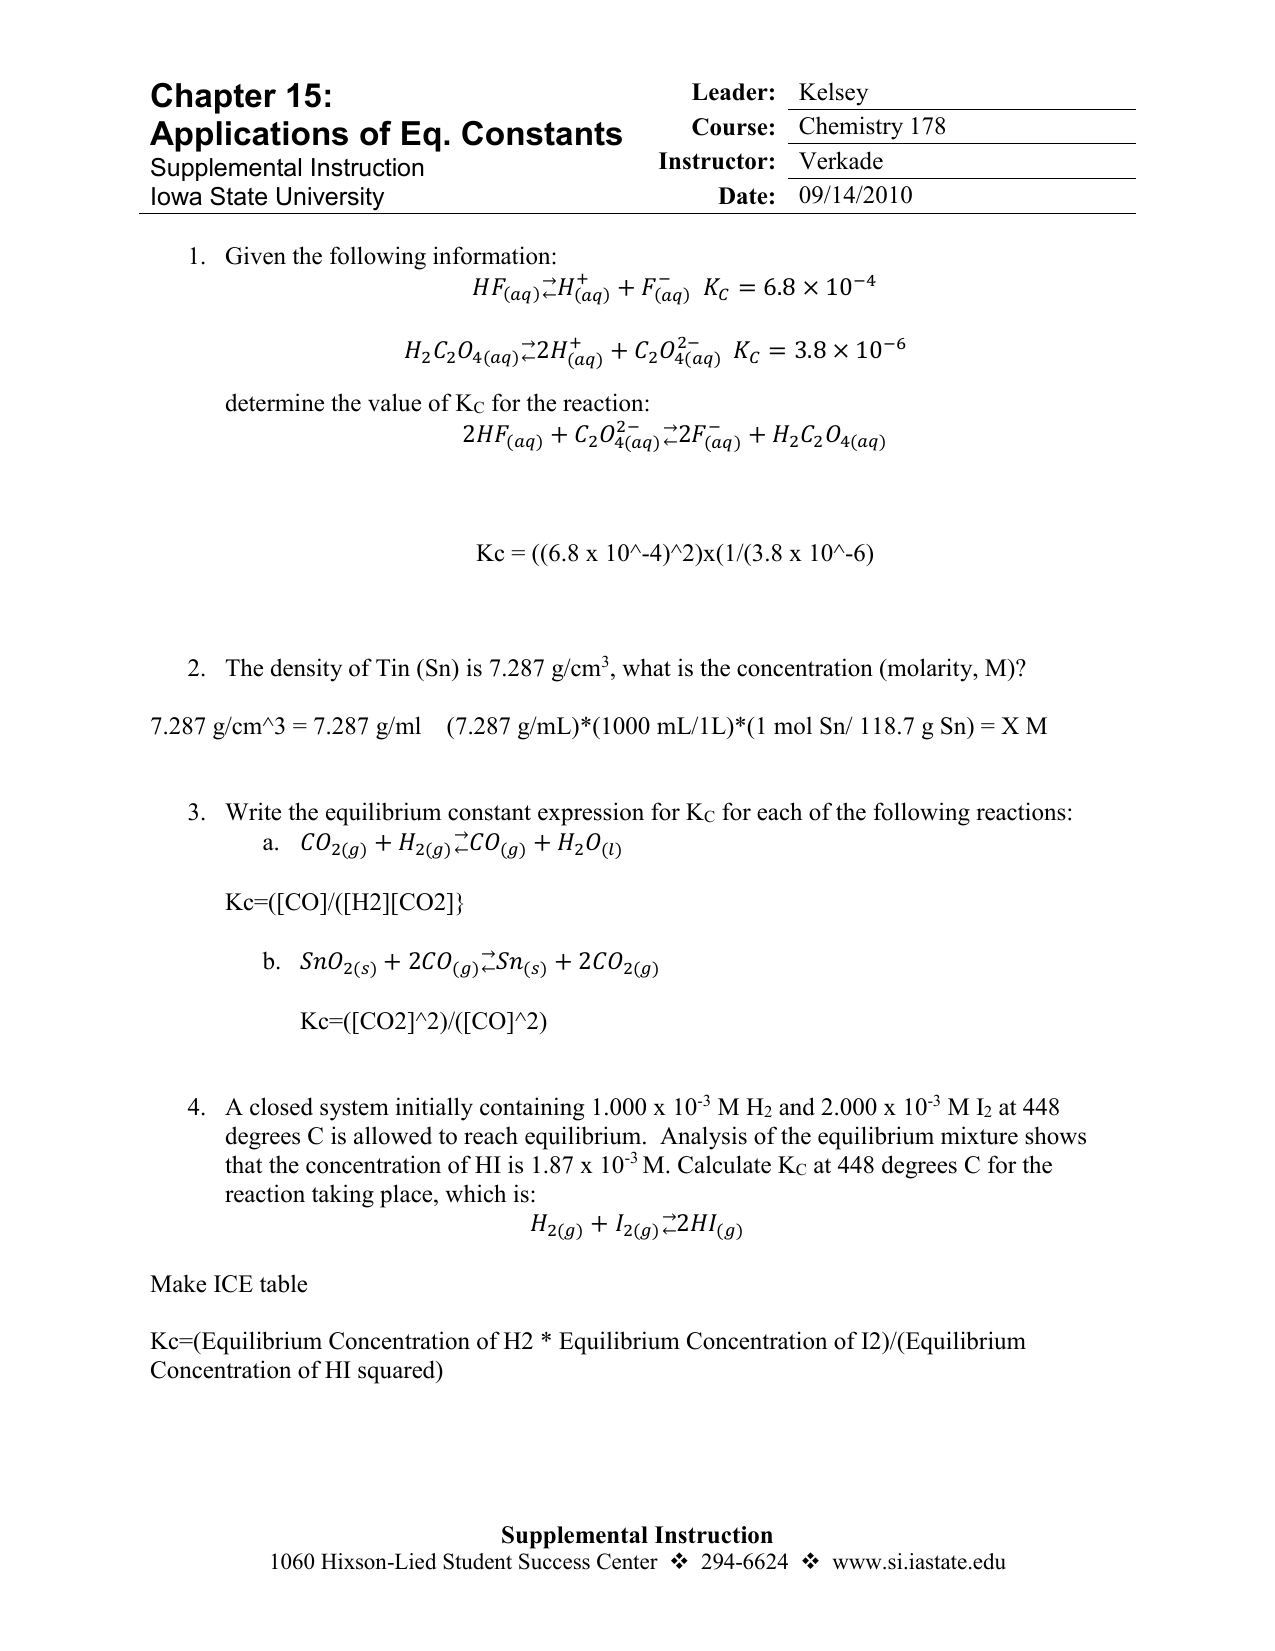 Chapter 15: Applications of Eq  Constants